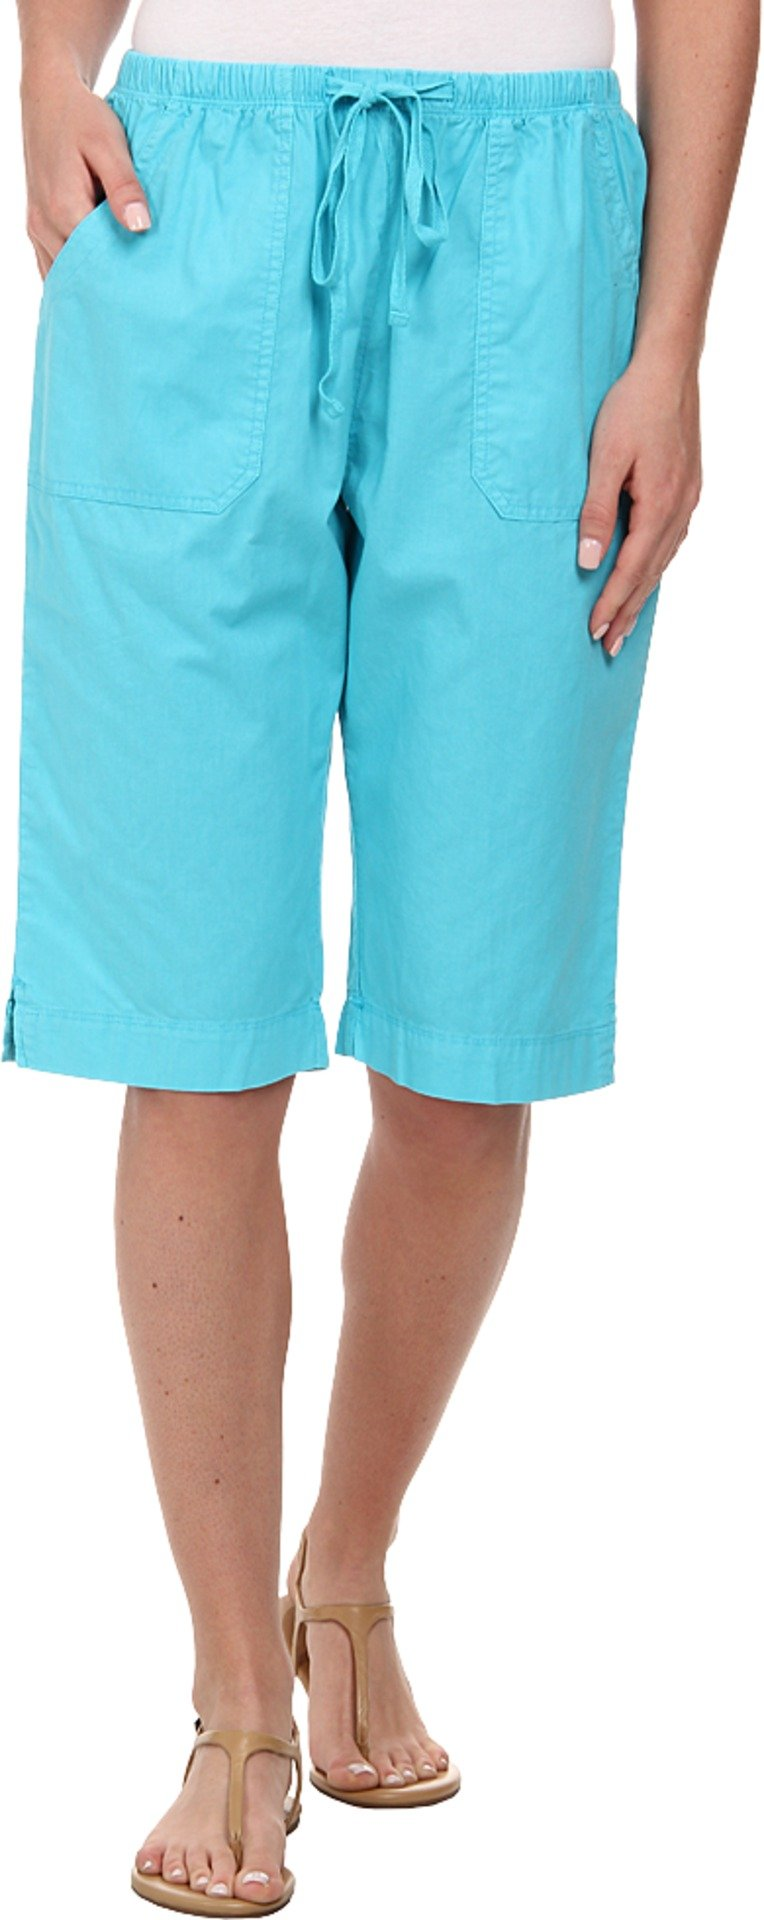 Fresh Produce Women's Park Avenue Pedal Pusher Luna Turquoise Shorts